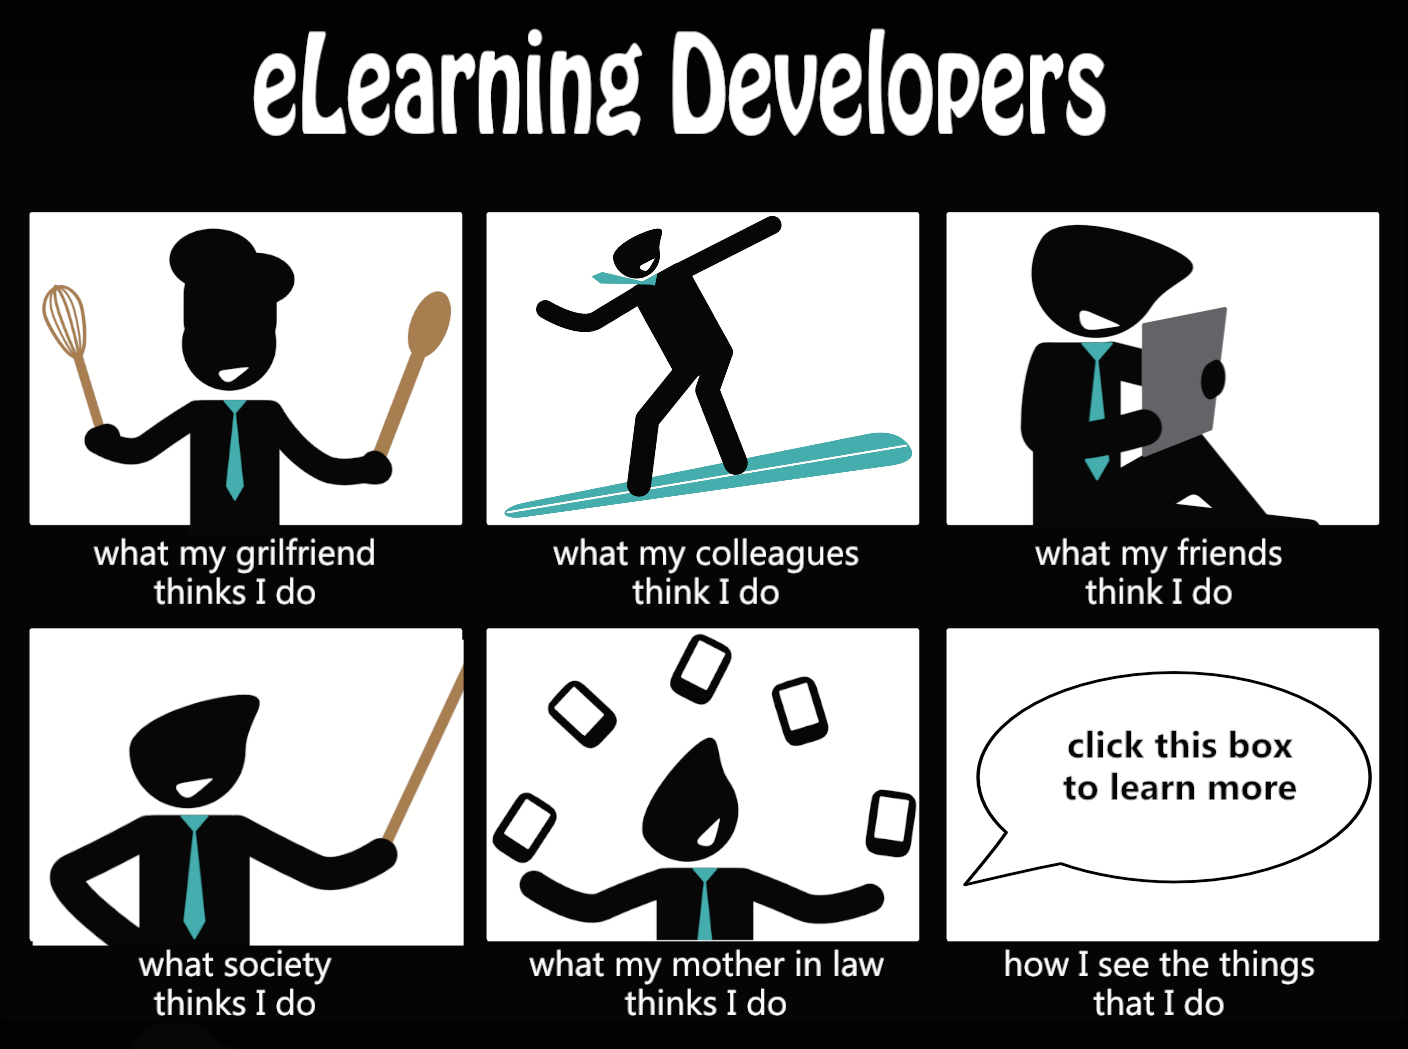 1242e3bd2f3f9faa41a711df91c6c5e9 Jpg 1408 1049 Elearning Challenges Learning